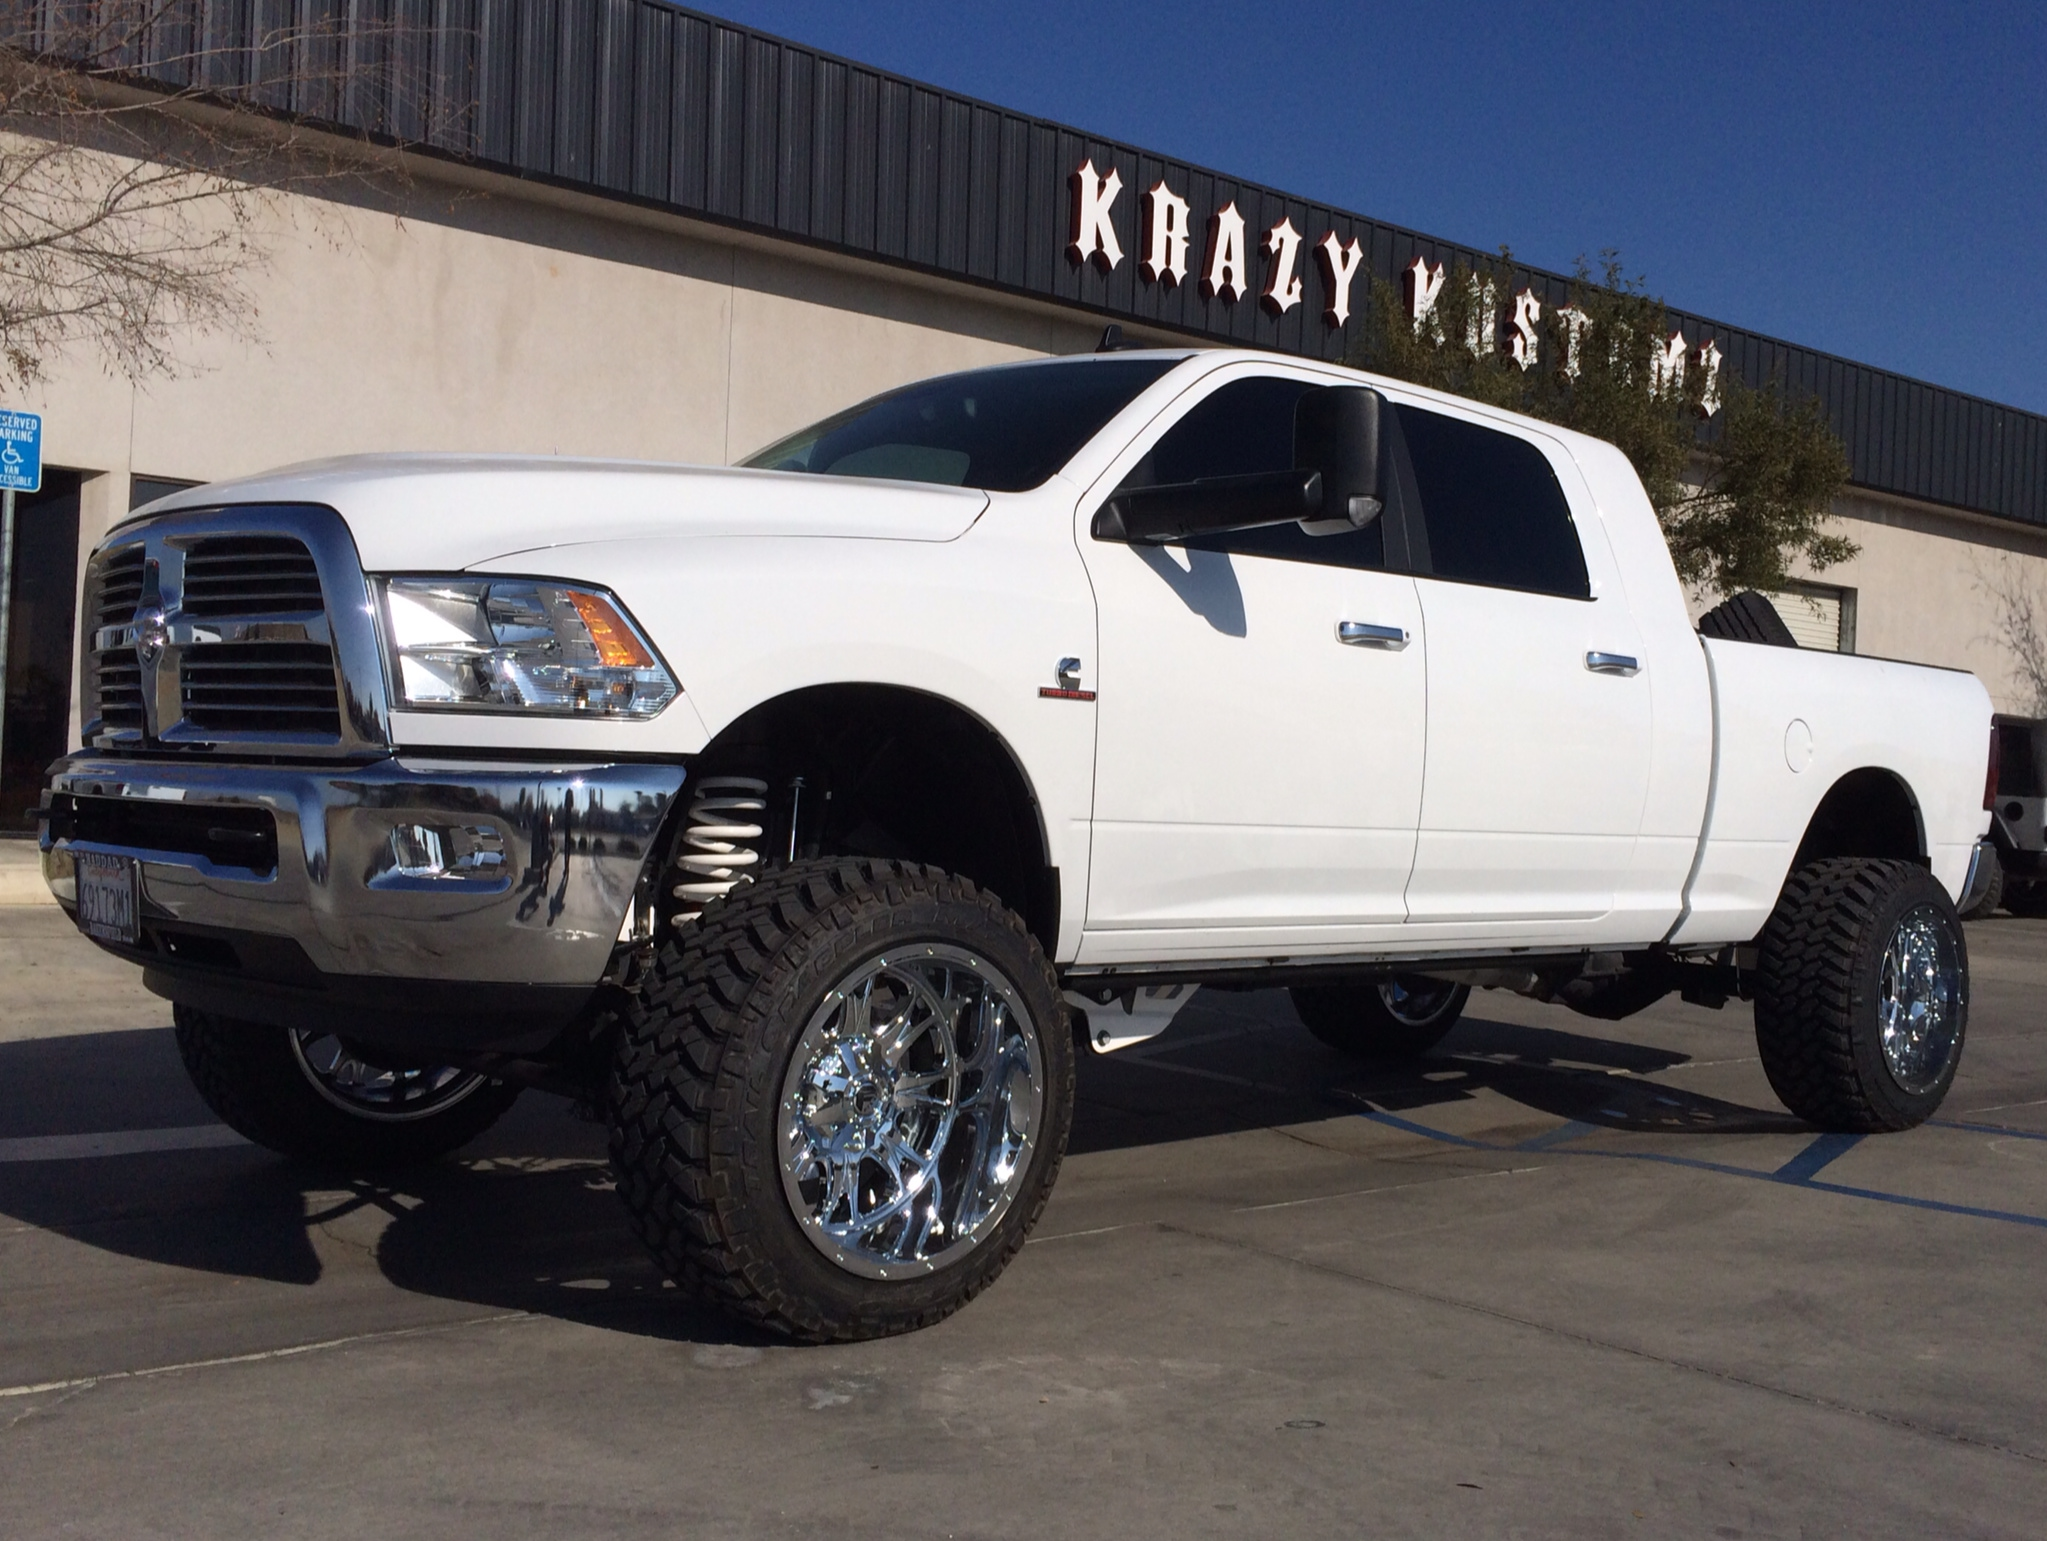 2014 dodge 3500 6in lift 35in tires on 22 in wheels - Dodge Ram 2014 Lifted